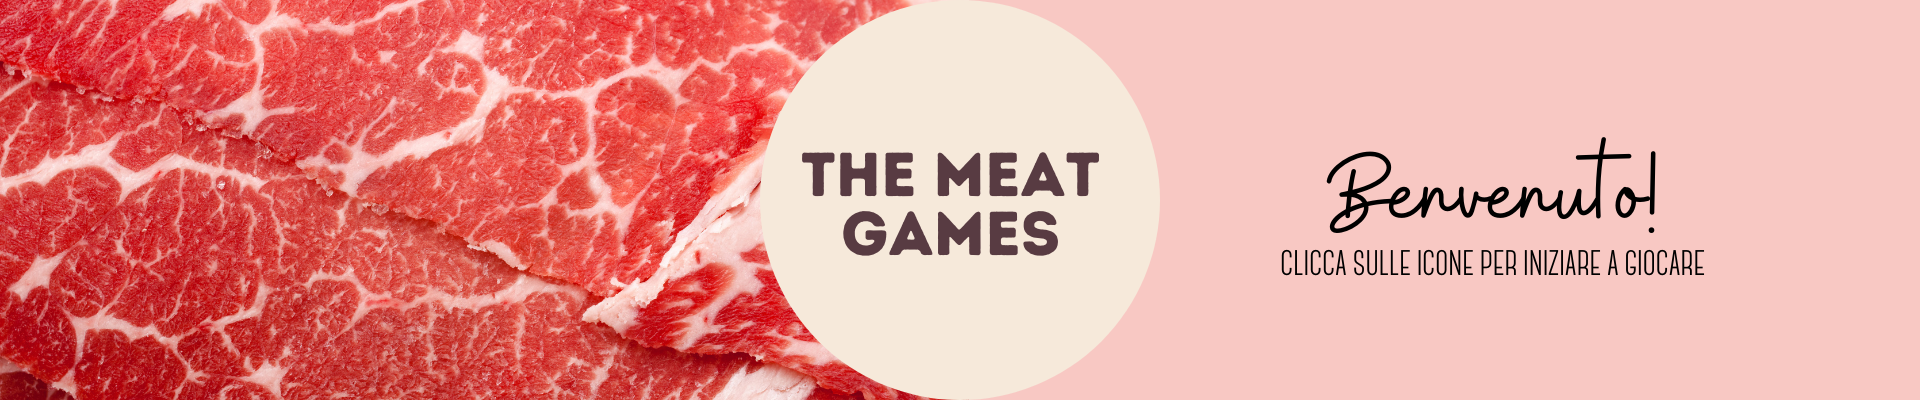 The meat games -